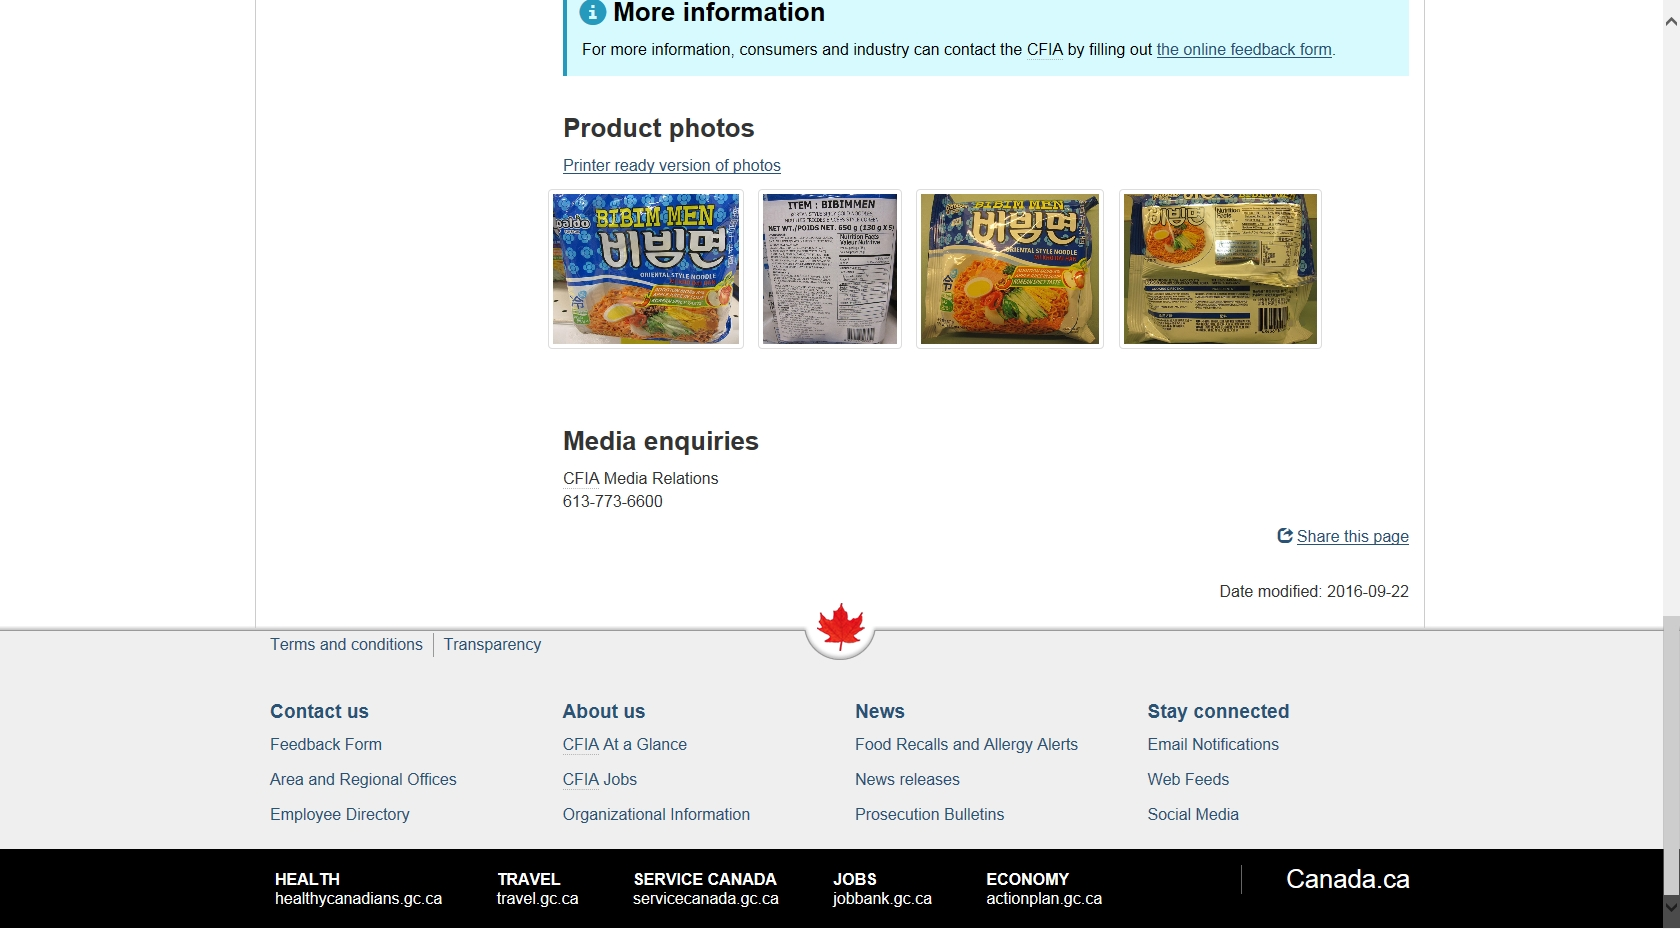 A captured image of the official website of the Canadian Food Inspection Agency.